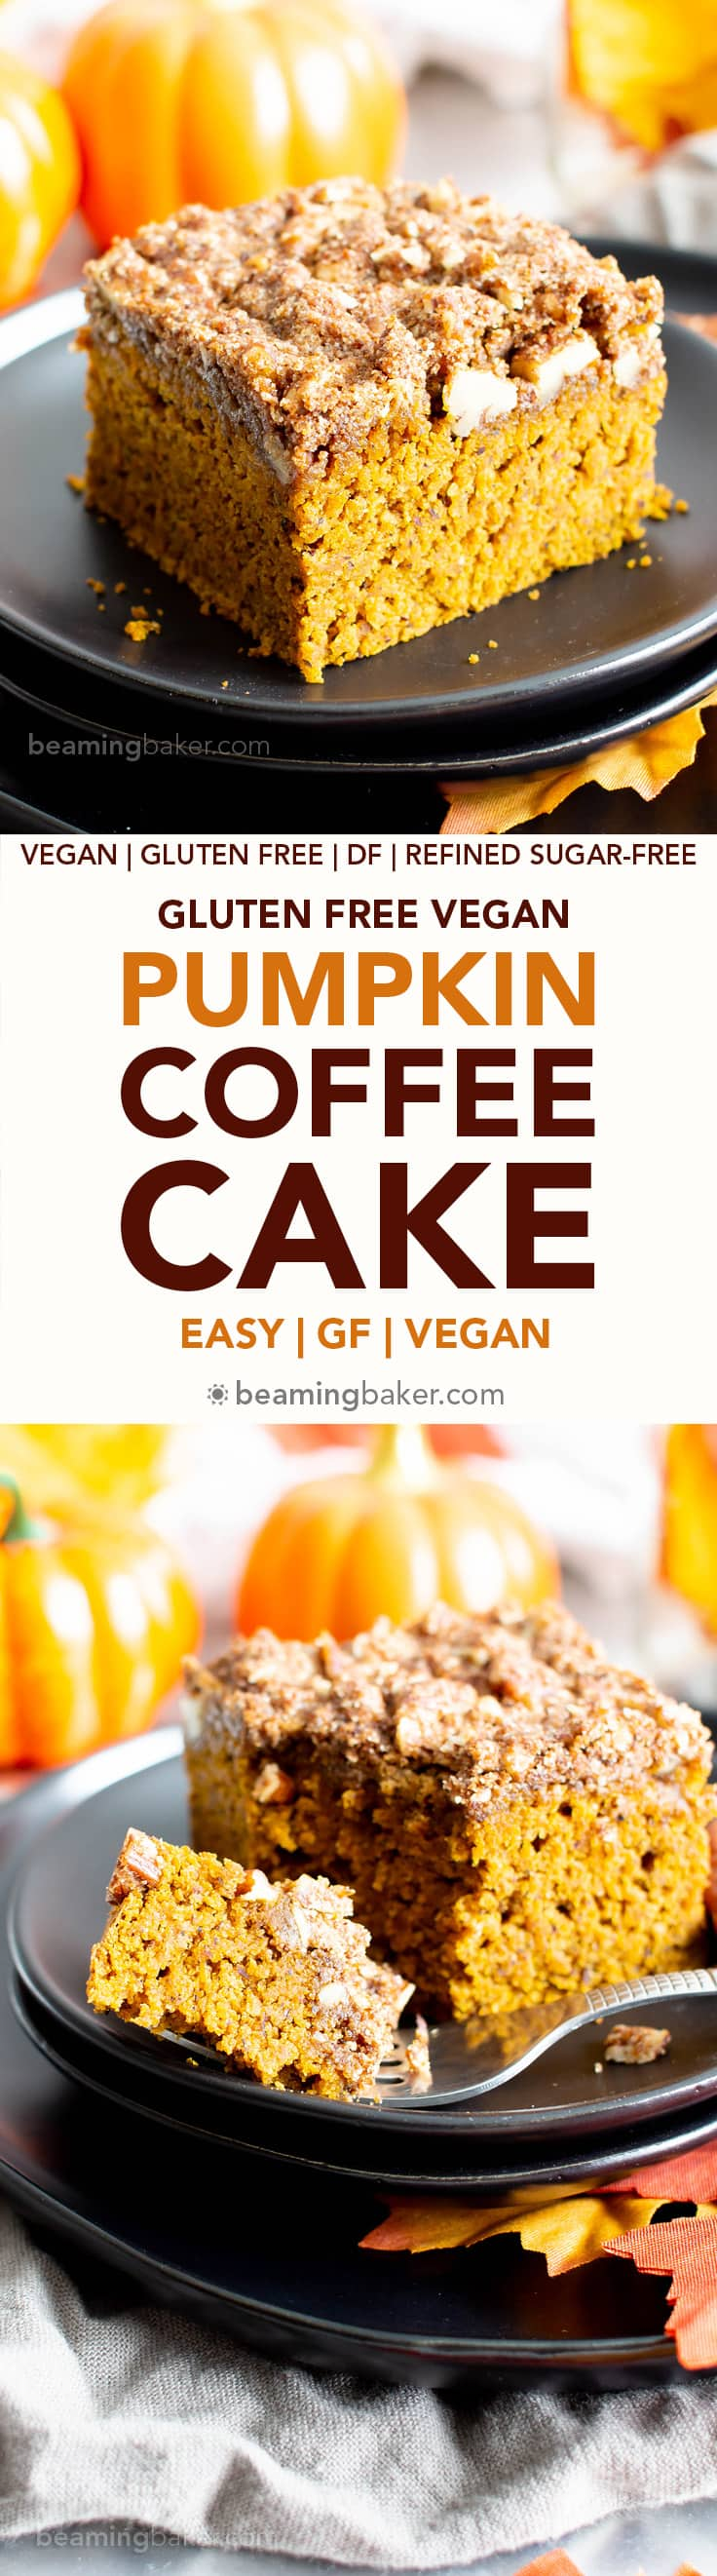 Easy Gluten Free Vegan Pumpkin Coffee Cake Recipe (V, GF): a thick layer of moist pumpkin coffee cake with a cinnamon sweet, buttery-rich topping. Made with healthy, whole ingredients. #Vegan #GlutenFree #CoffeeCake #Pumpkin #VeganBaking #CleanEating #Fall #PumpkinSpice #HealthyDessert #VeganGlutenFree | Recipe at BeamingBaker.com